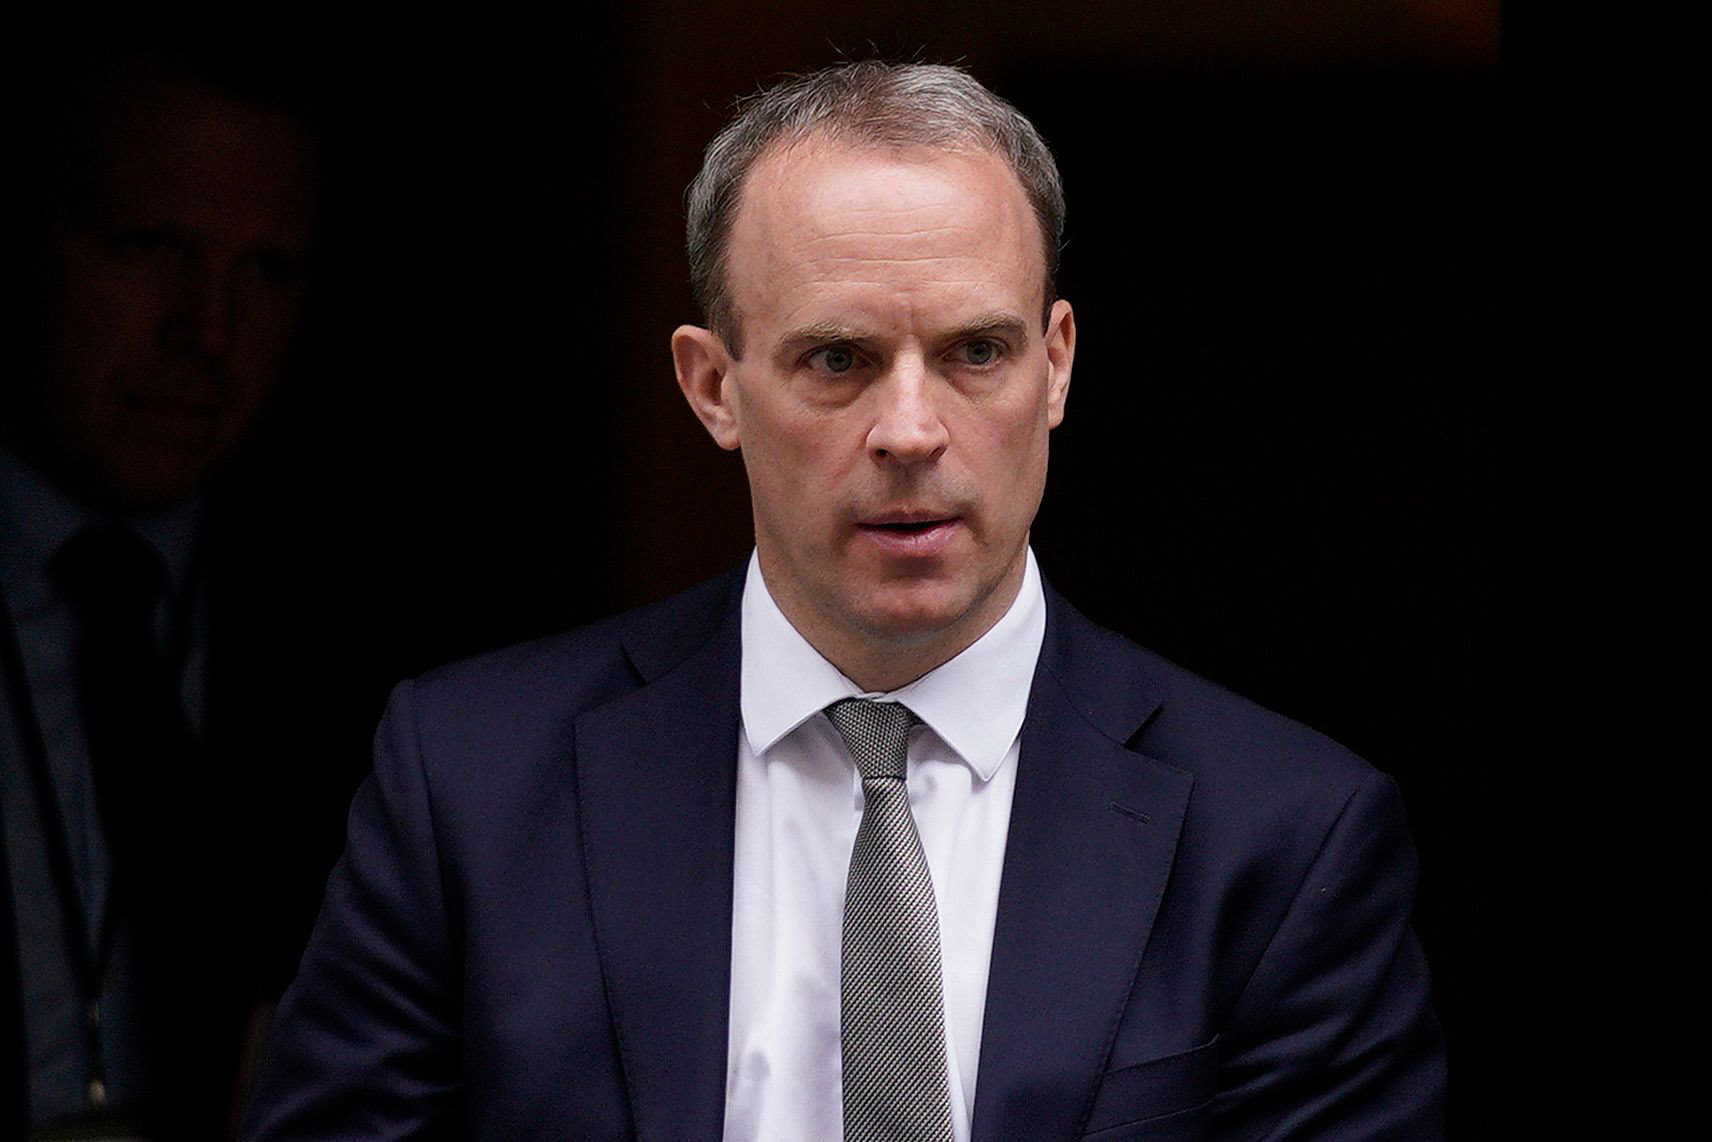 Britain's Foreign Secretary Dominic Raab leaves 10 Downing Street after a Cabinet meeting on March 17.